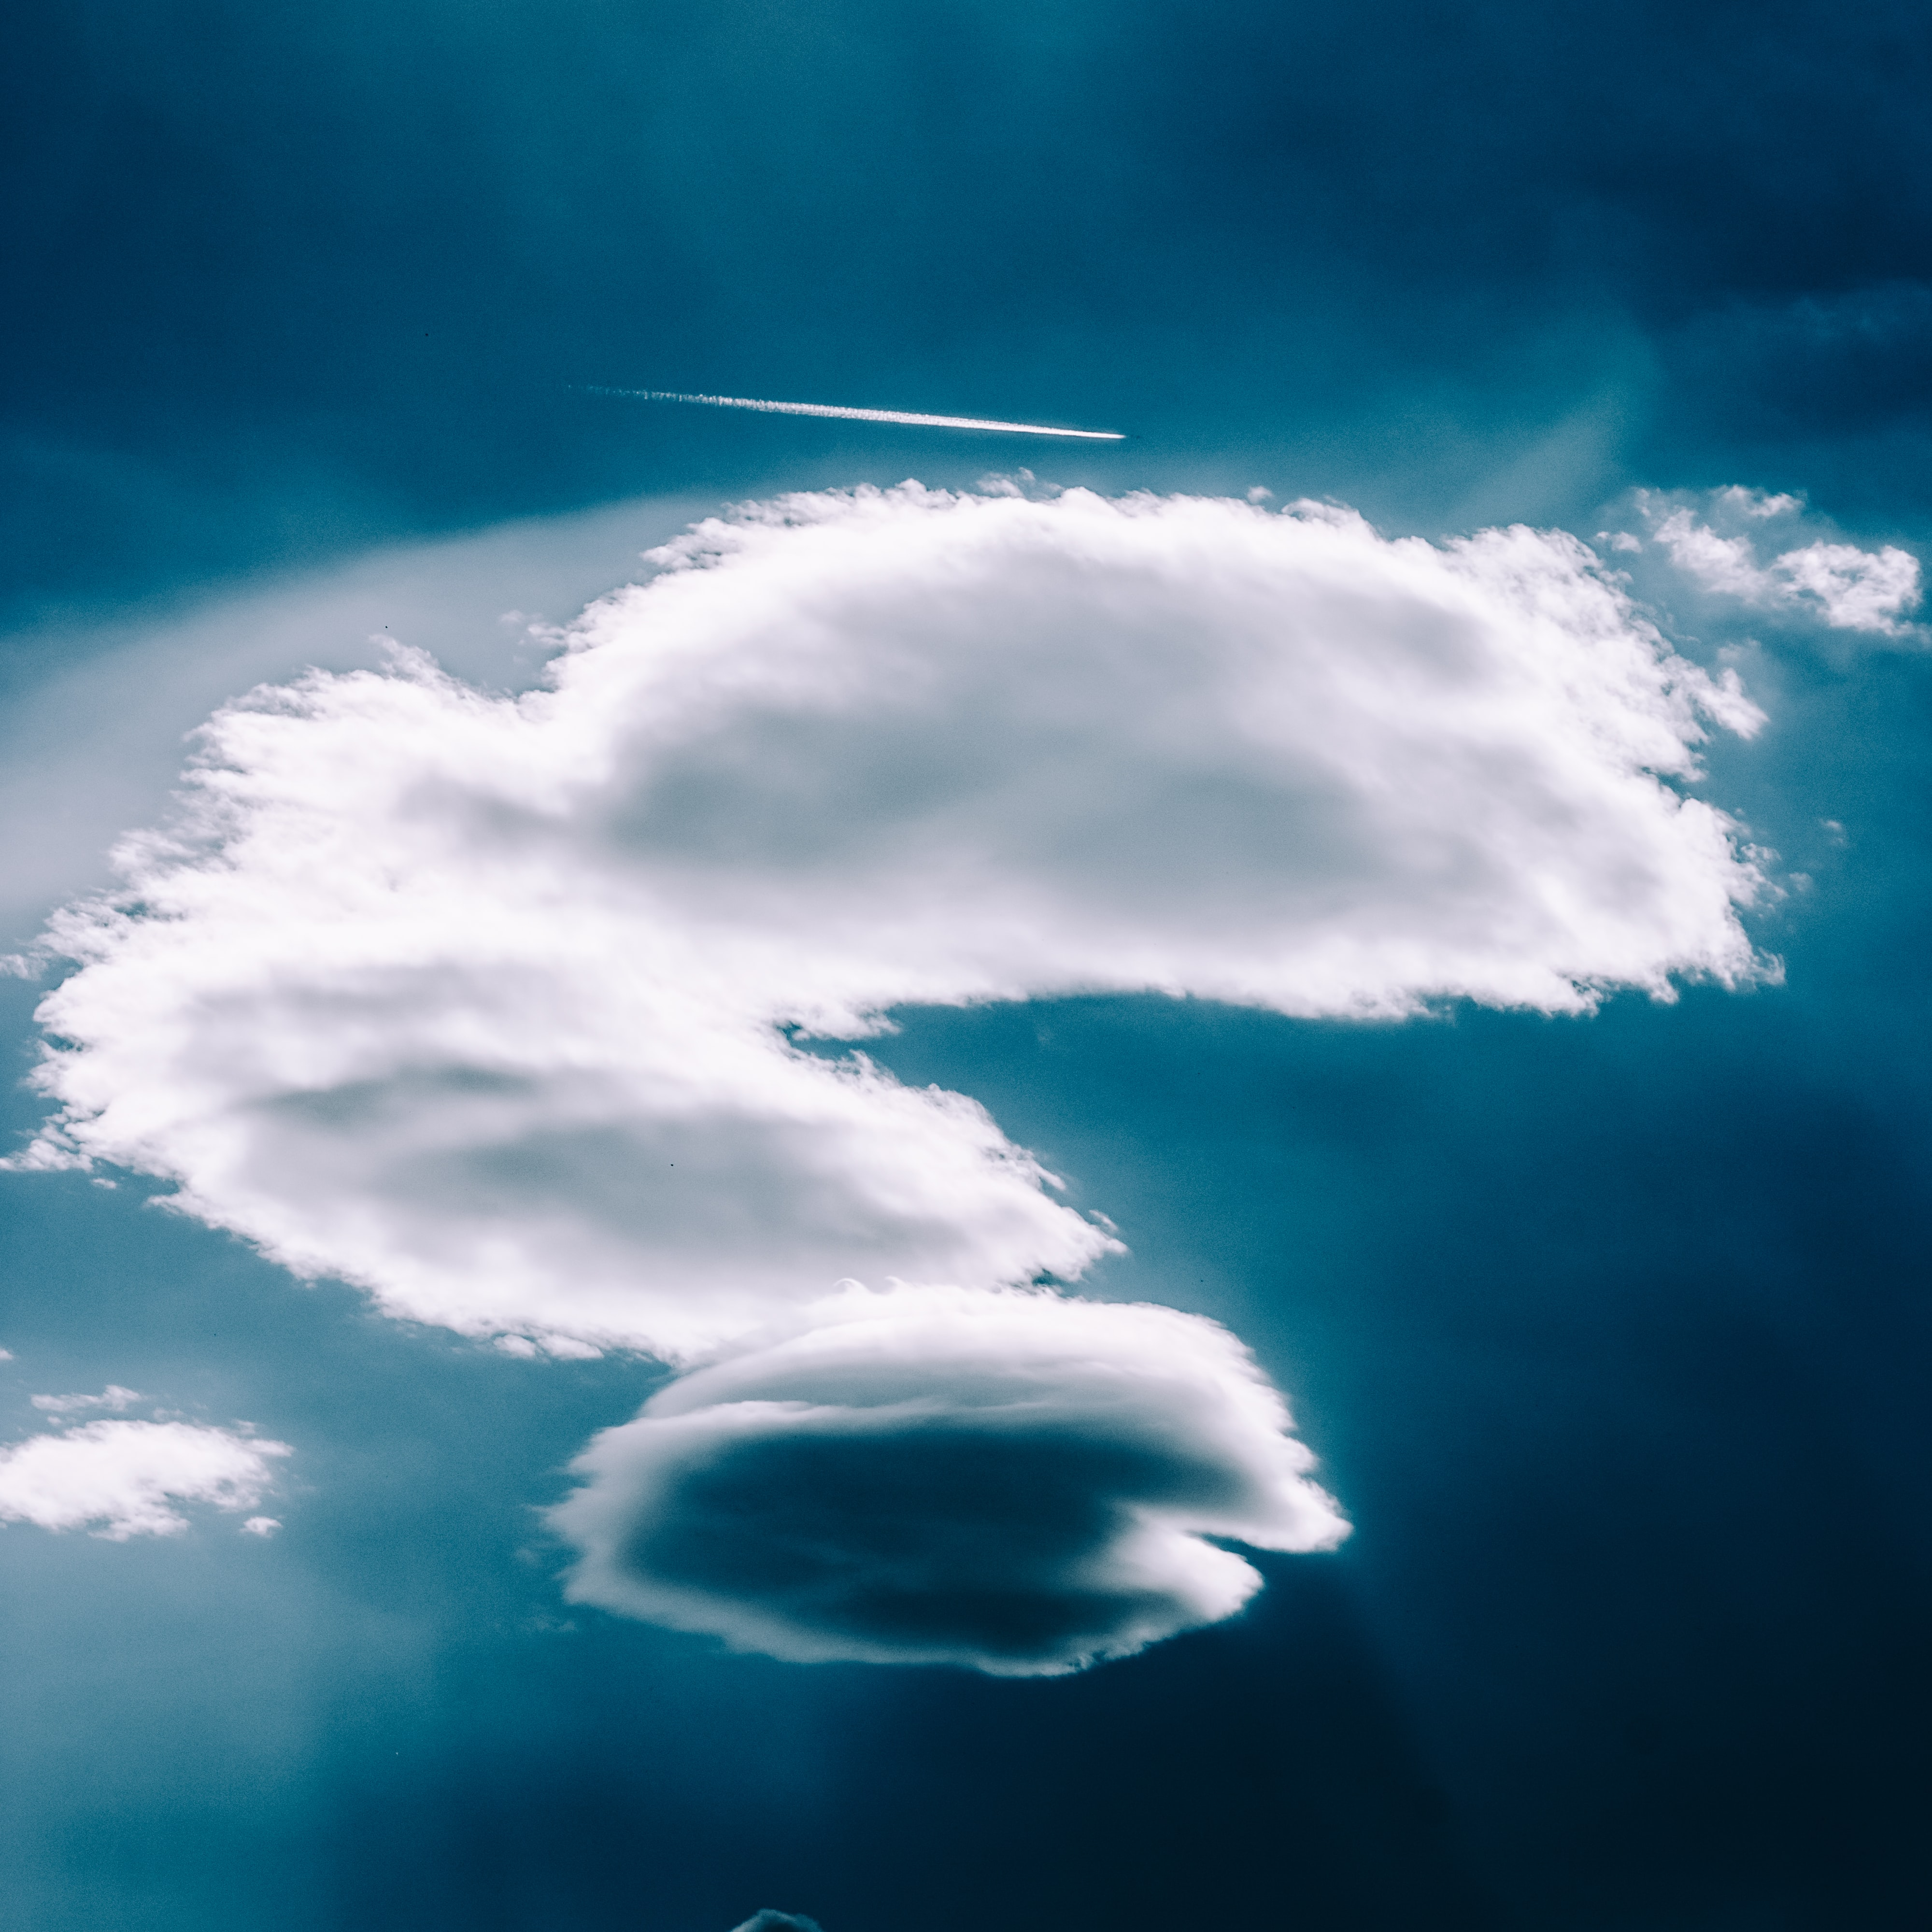 low angle of white clouds